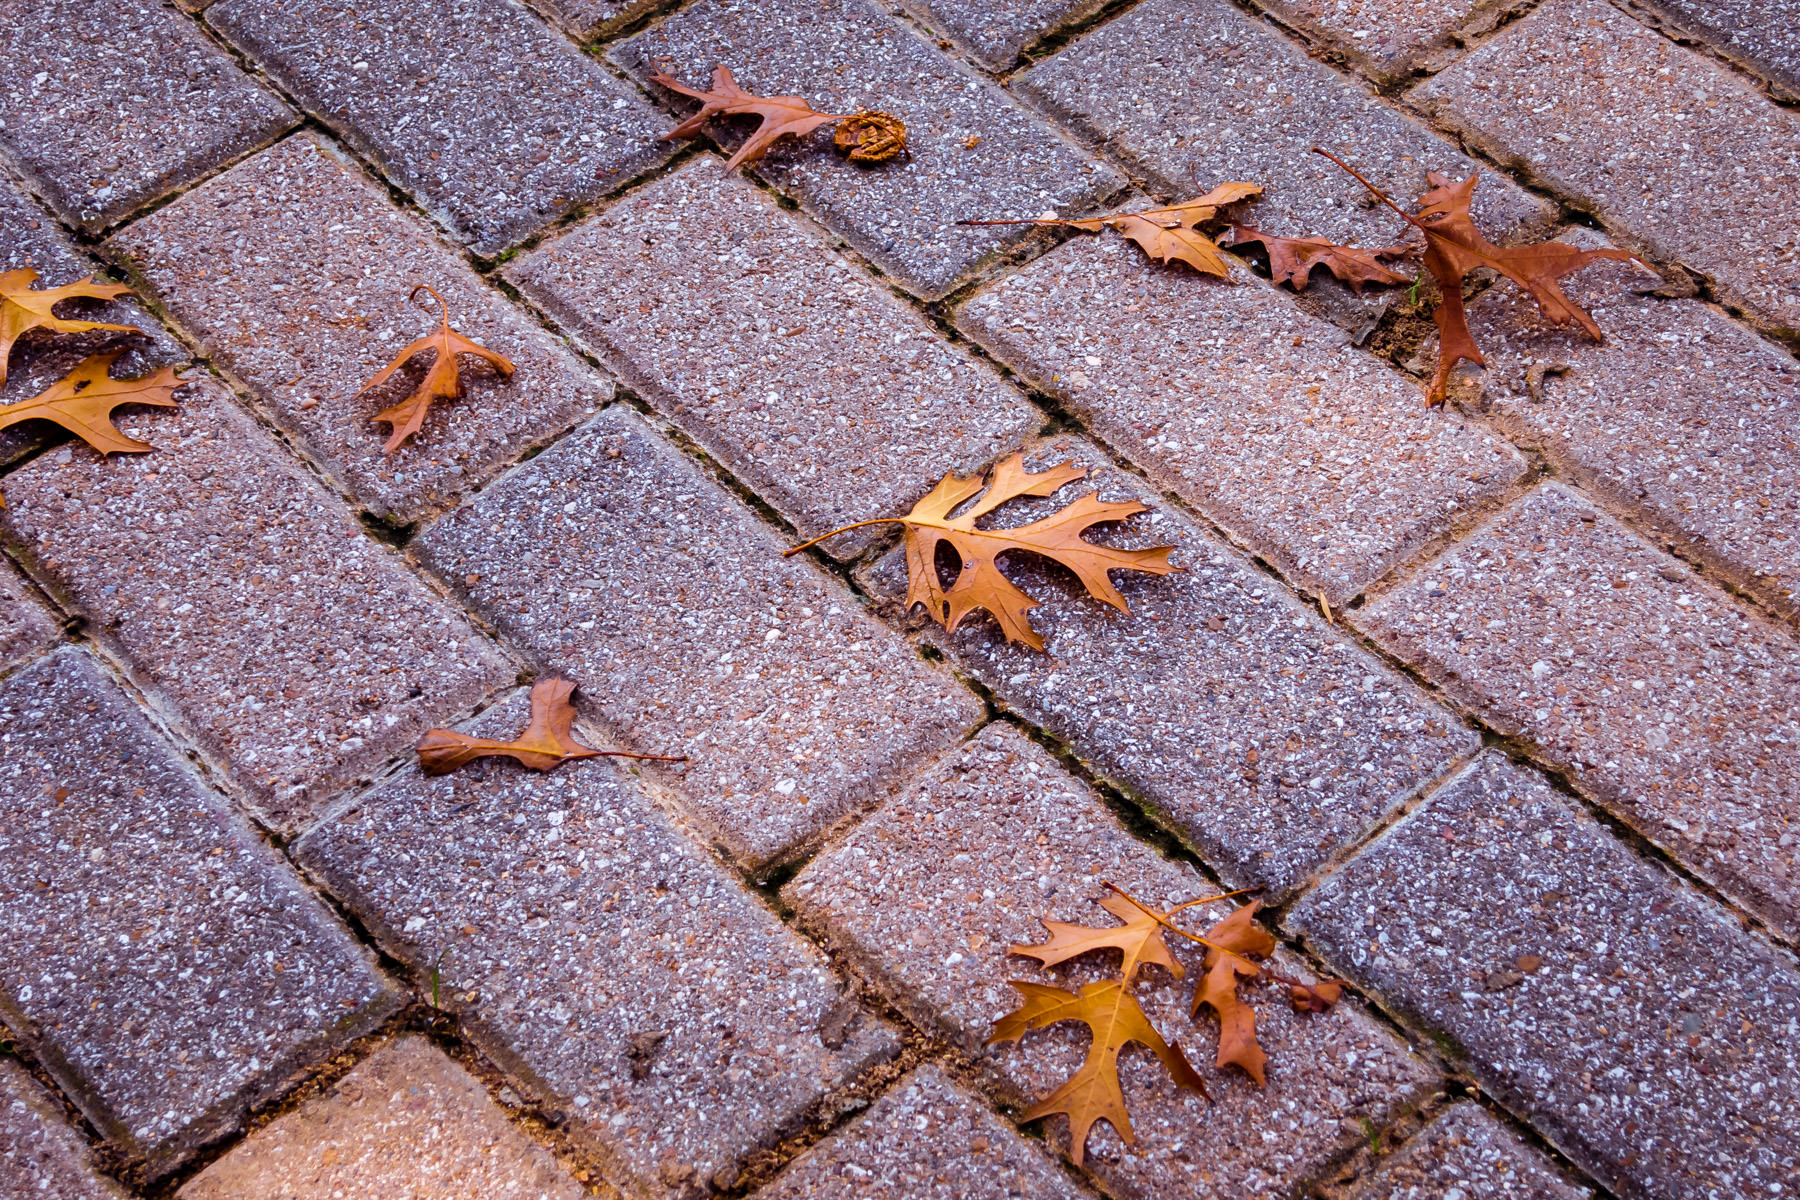 Leaves on a sidewalk in Irving, Texas.